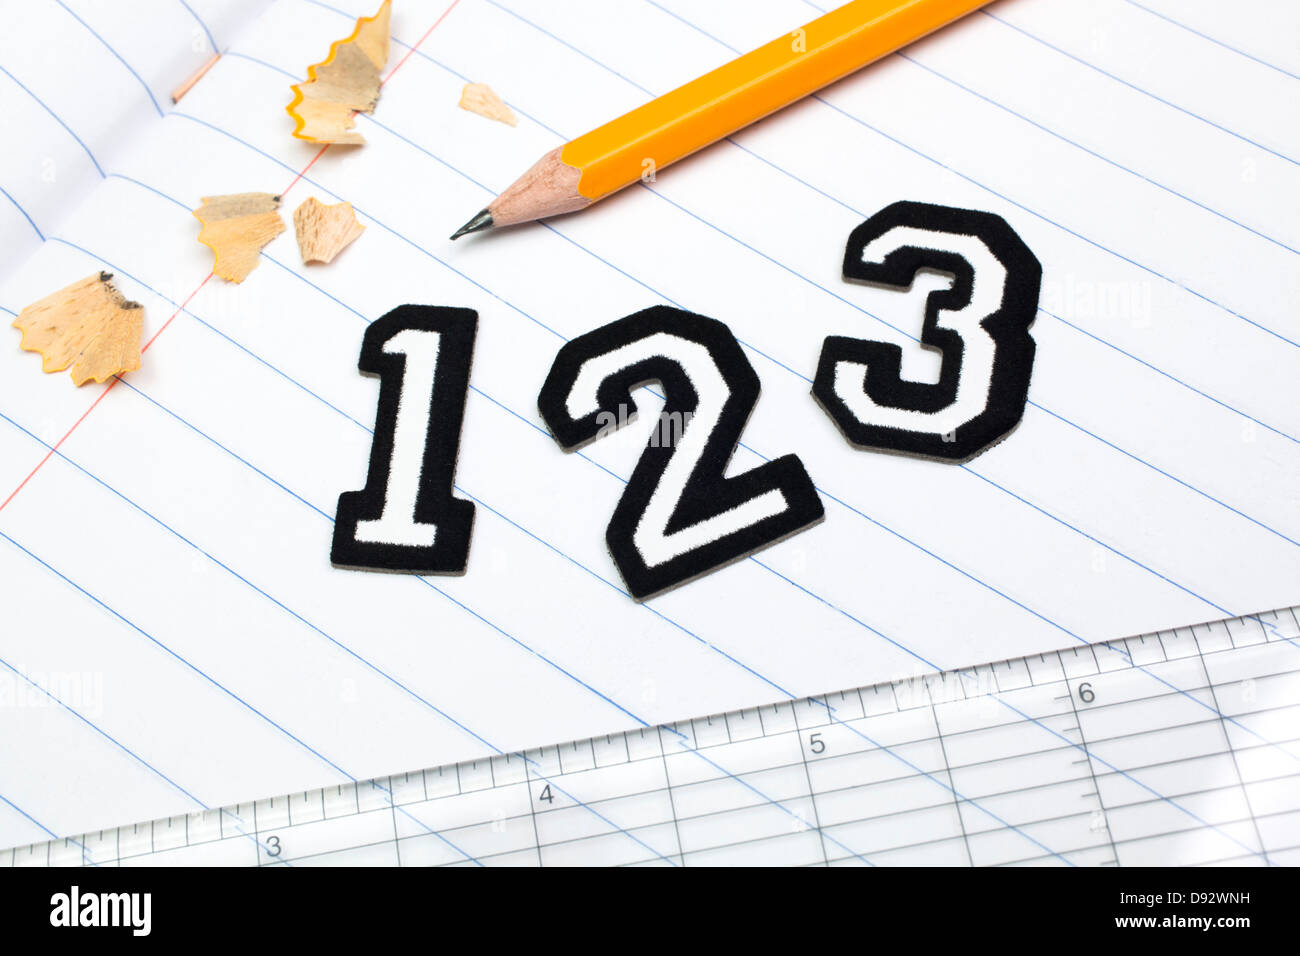 varsity font sticker numbers 1 2 3 atop a lined paper notebook